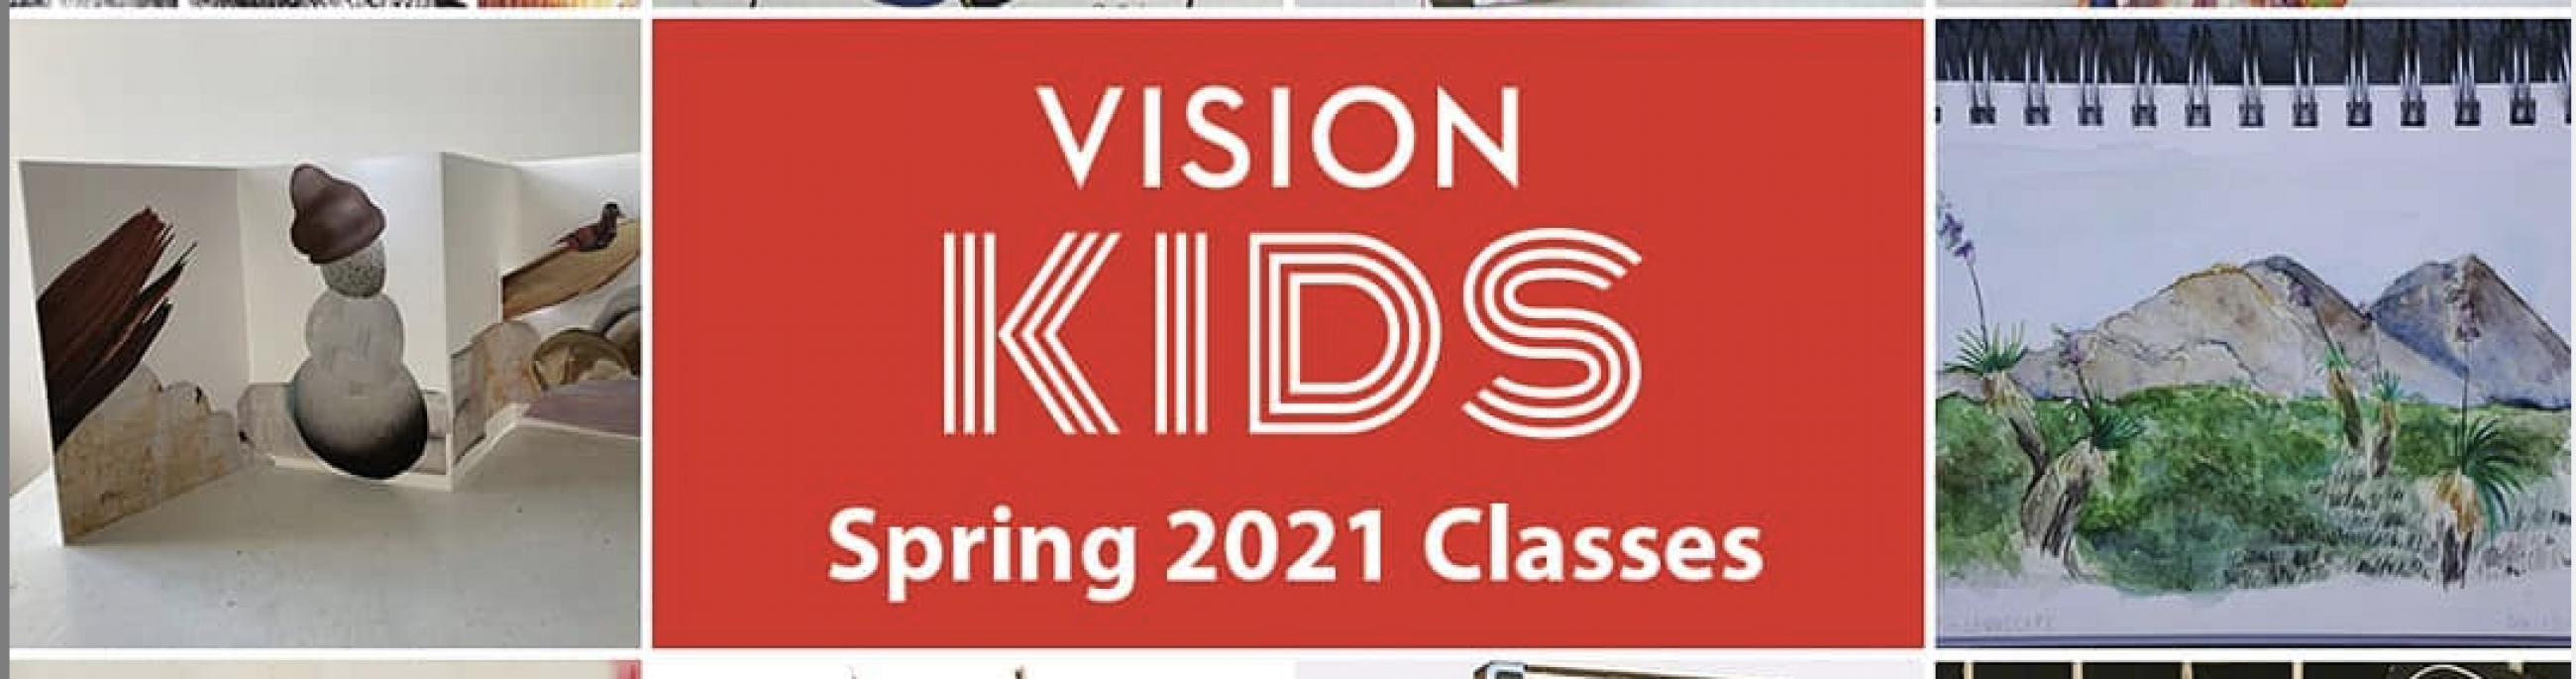 Vision Kids in white text on a red background.